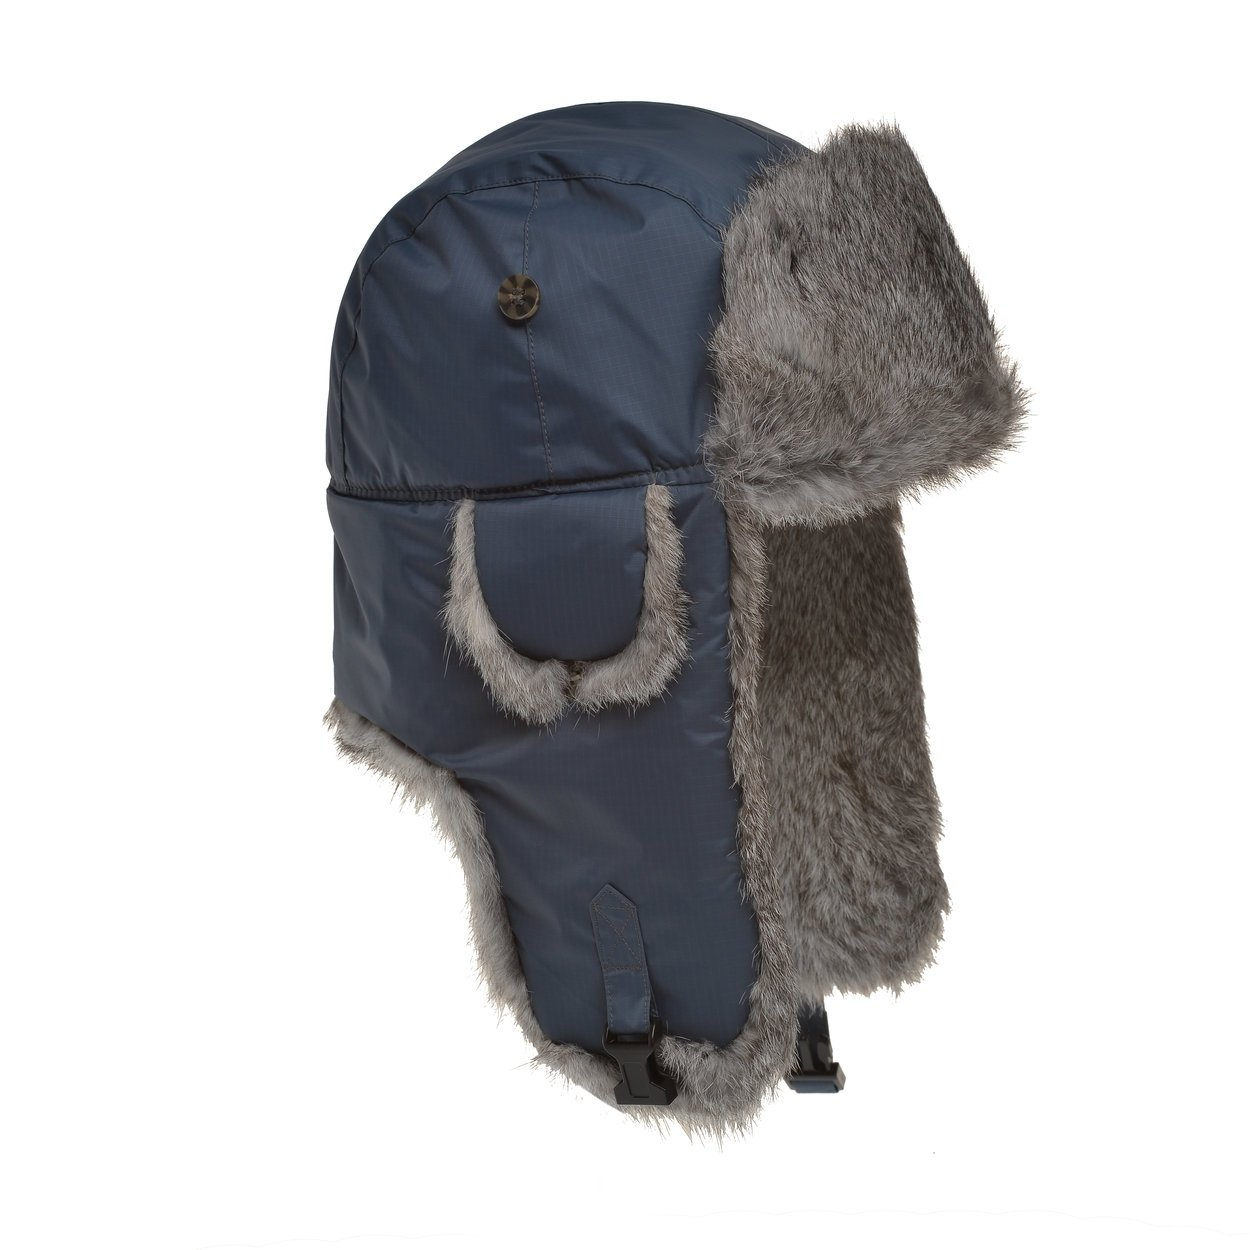 f969ce0ec Mad Bomber Black Aviator Pilot Bomber Hat with Faux Fur Trapper Hunting Cap